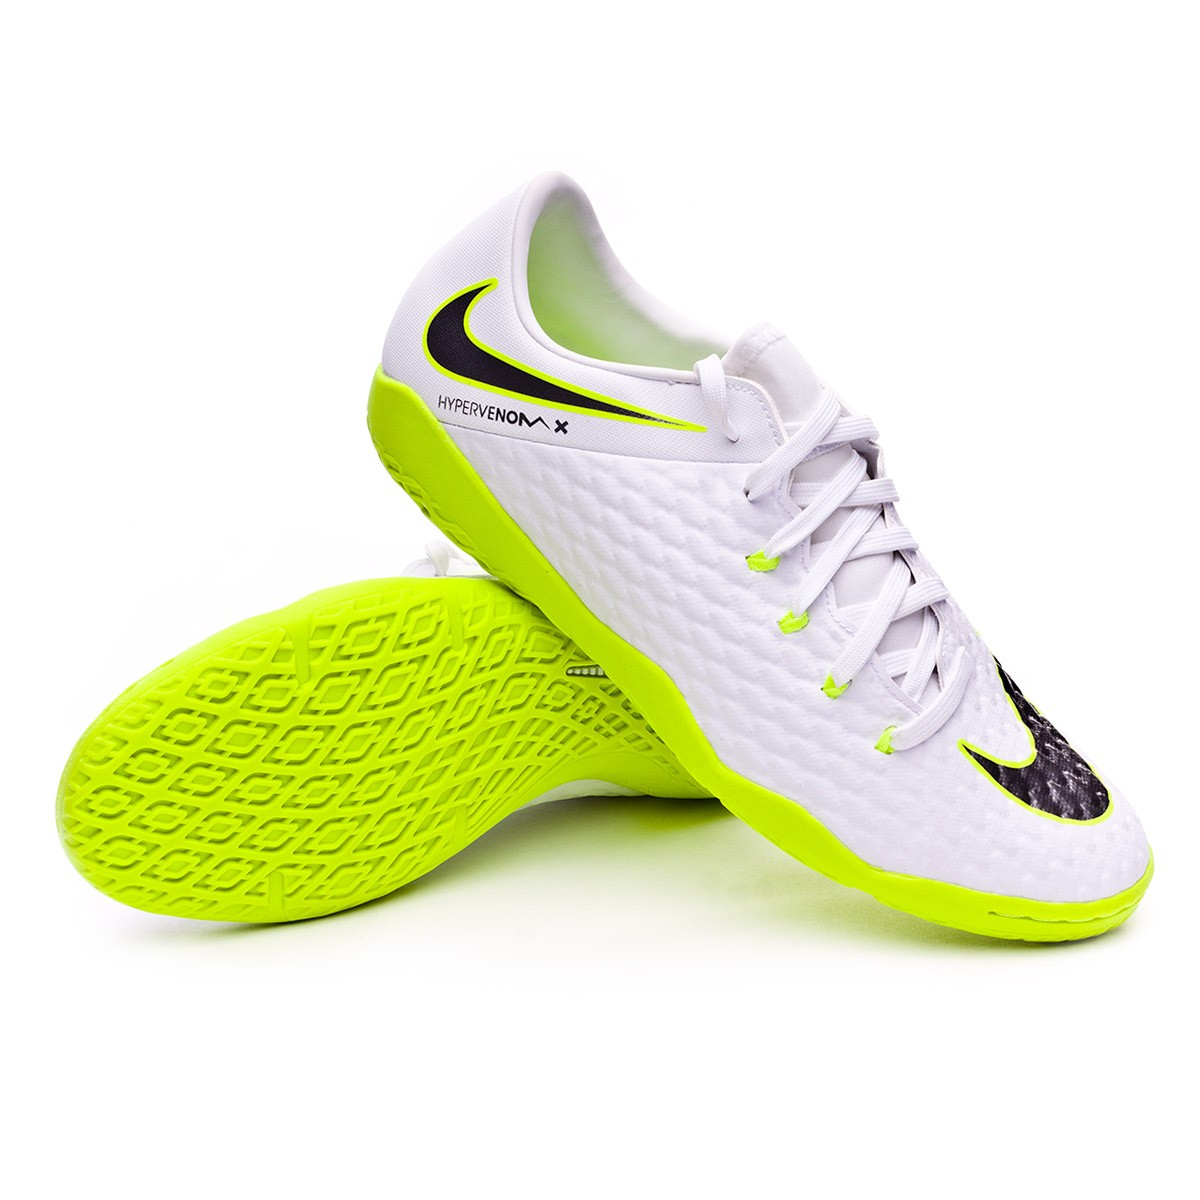 dba6564e3e74 Zapatilla Hypervenom PhantomX III Academy IC White-Metallic cool  grey-Volt-Metallic cool g